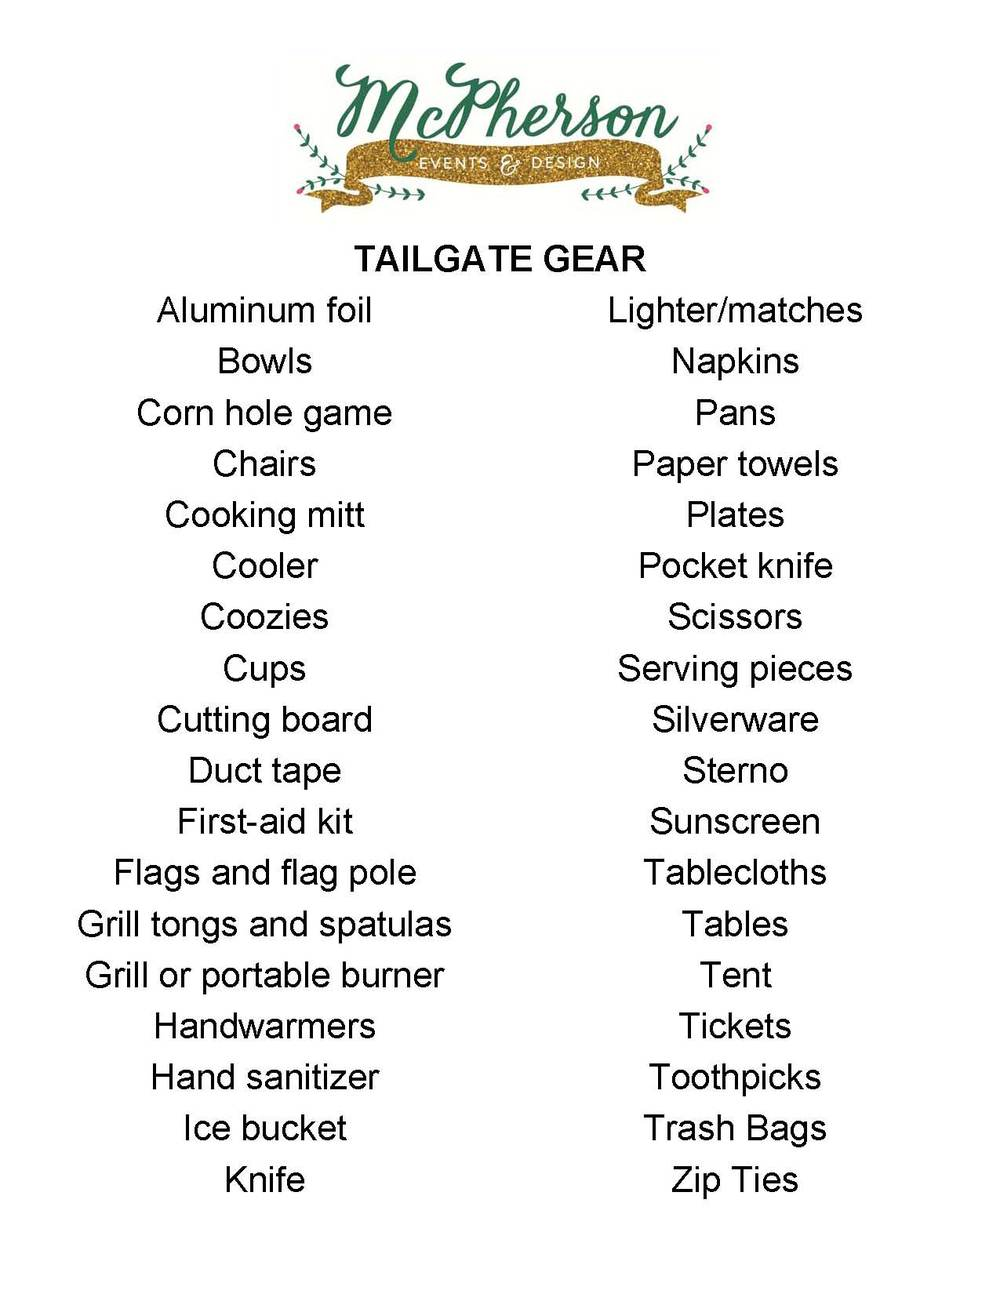 Tailgating Gear List | McPherson Events & Design | www.eventsbymcpherson.com